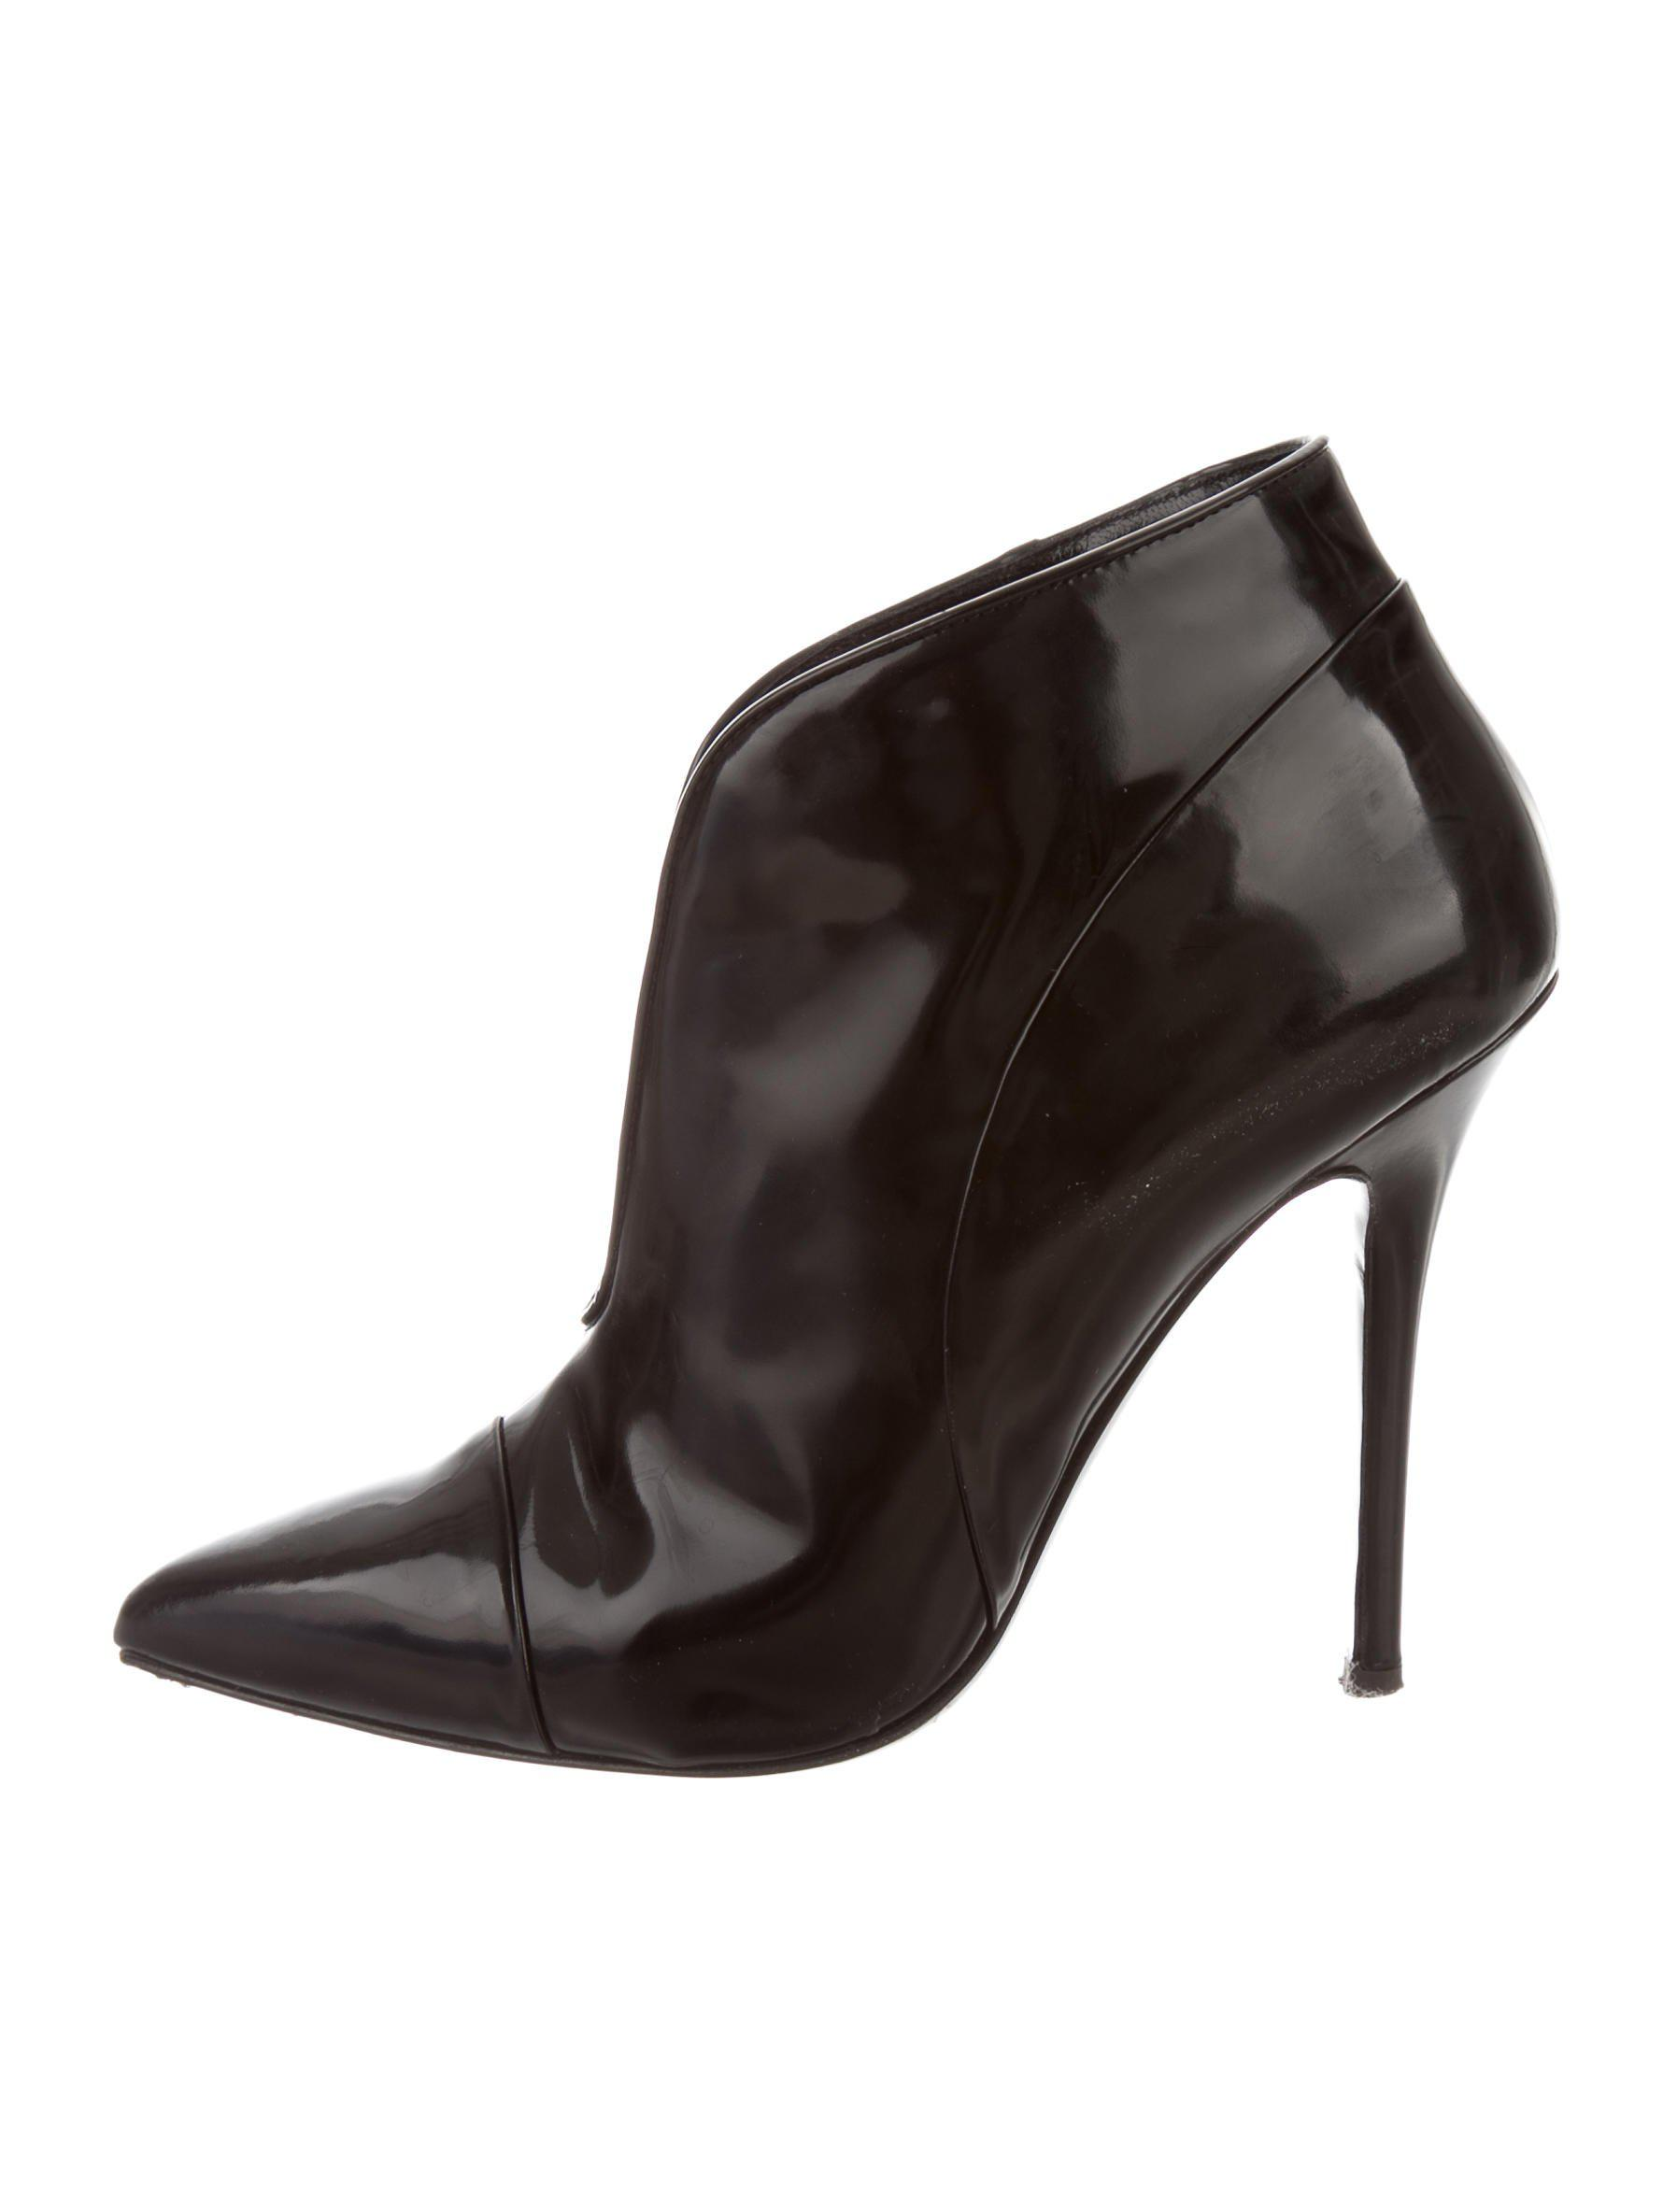 buy cheap view Proenza Schouler Leather Pointed-Toe Booties buy online new 2015 for sale VZ2GKr2